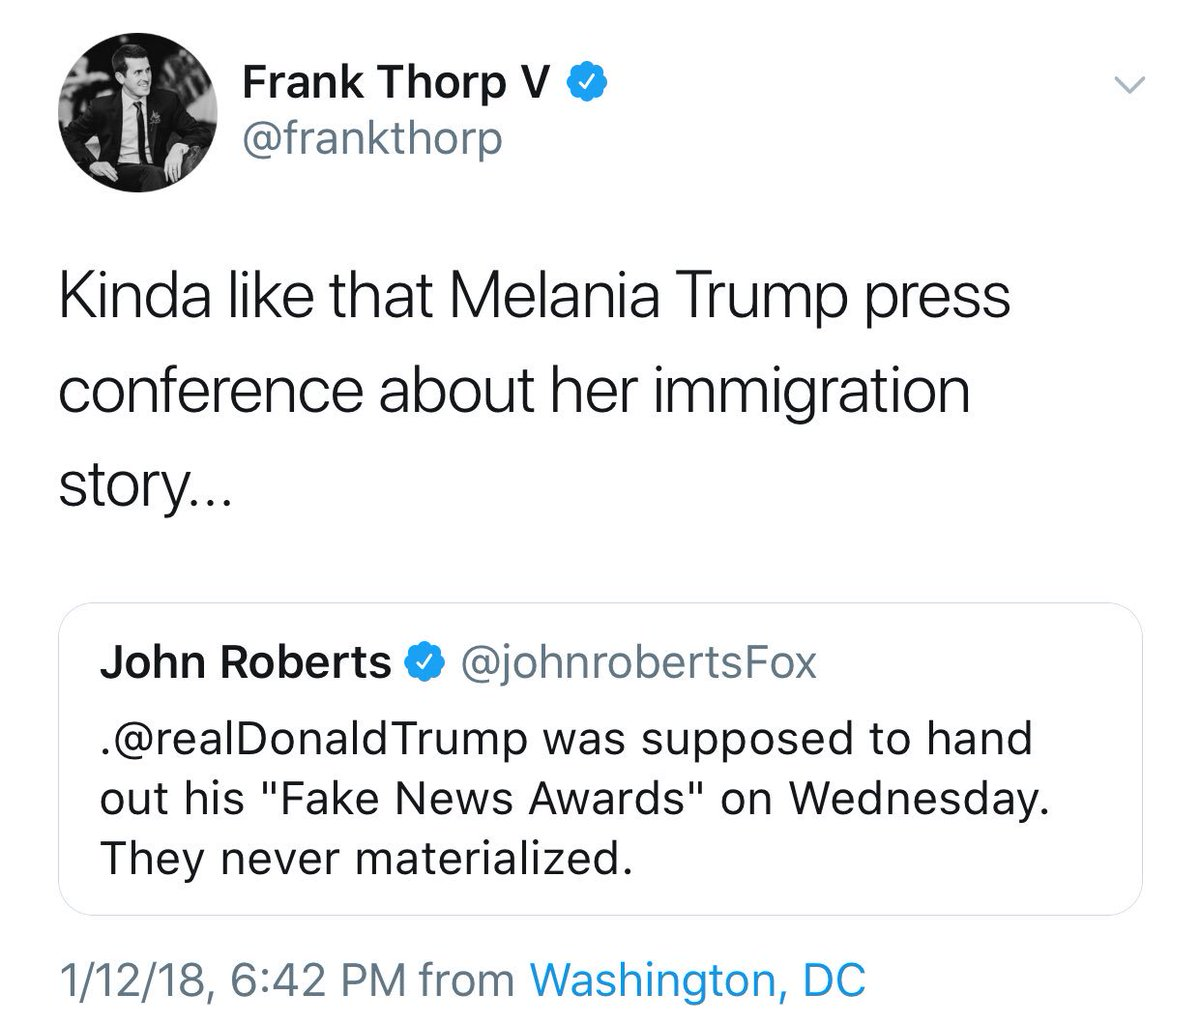 """Deleted my tweet about the """"fake news awards,"""" it's scheduled for next Wednesday. (H/t @ddale8) [but we still never saw that Melania Trump Presser materialize...]"""